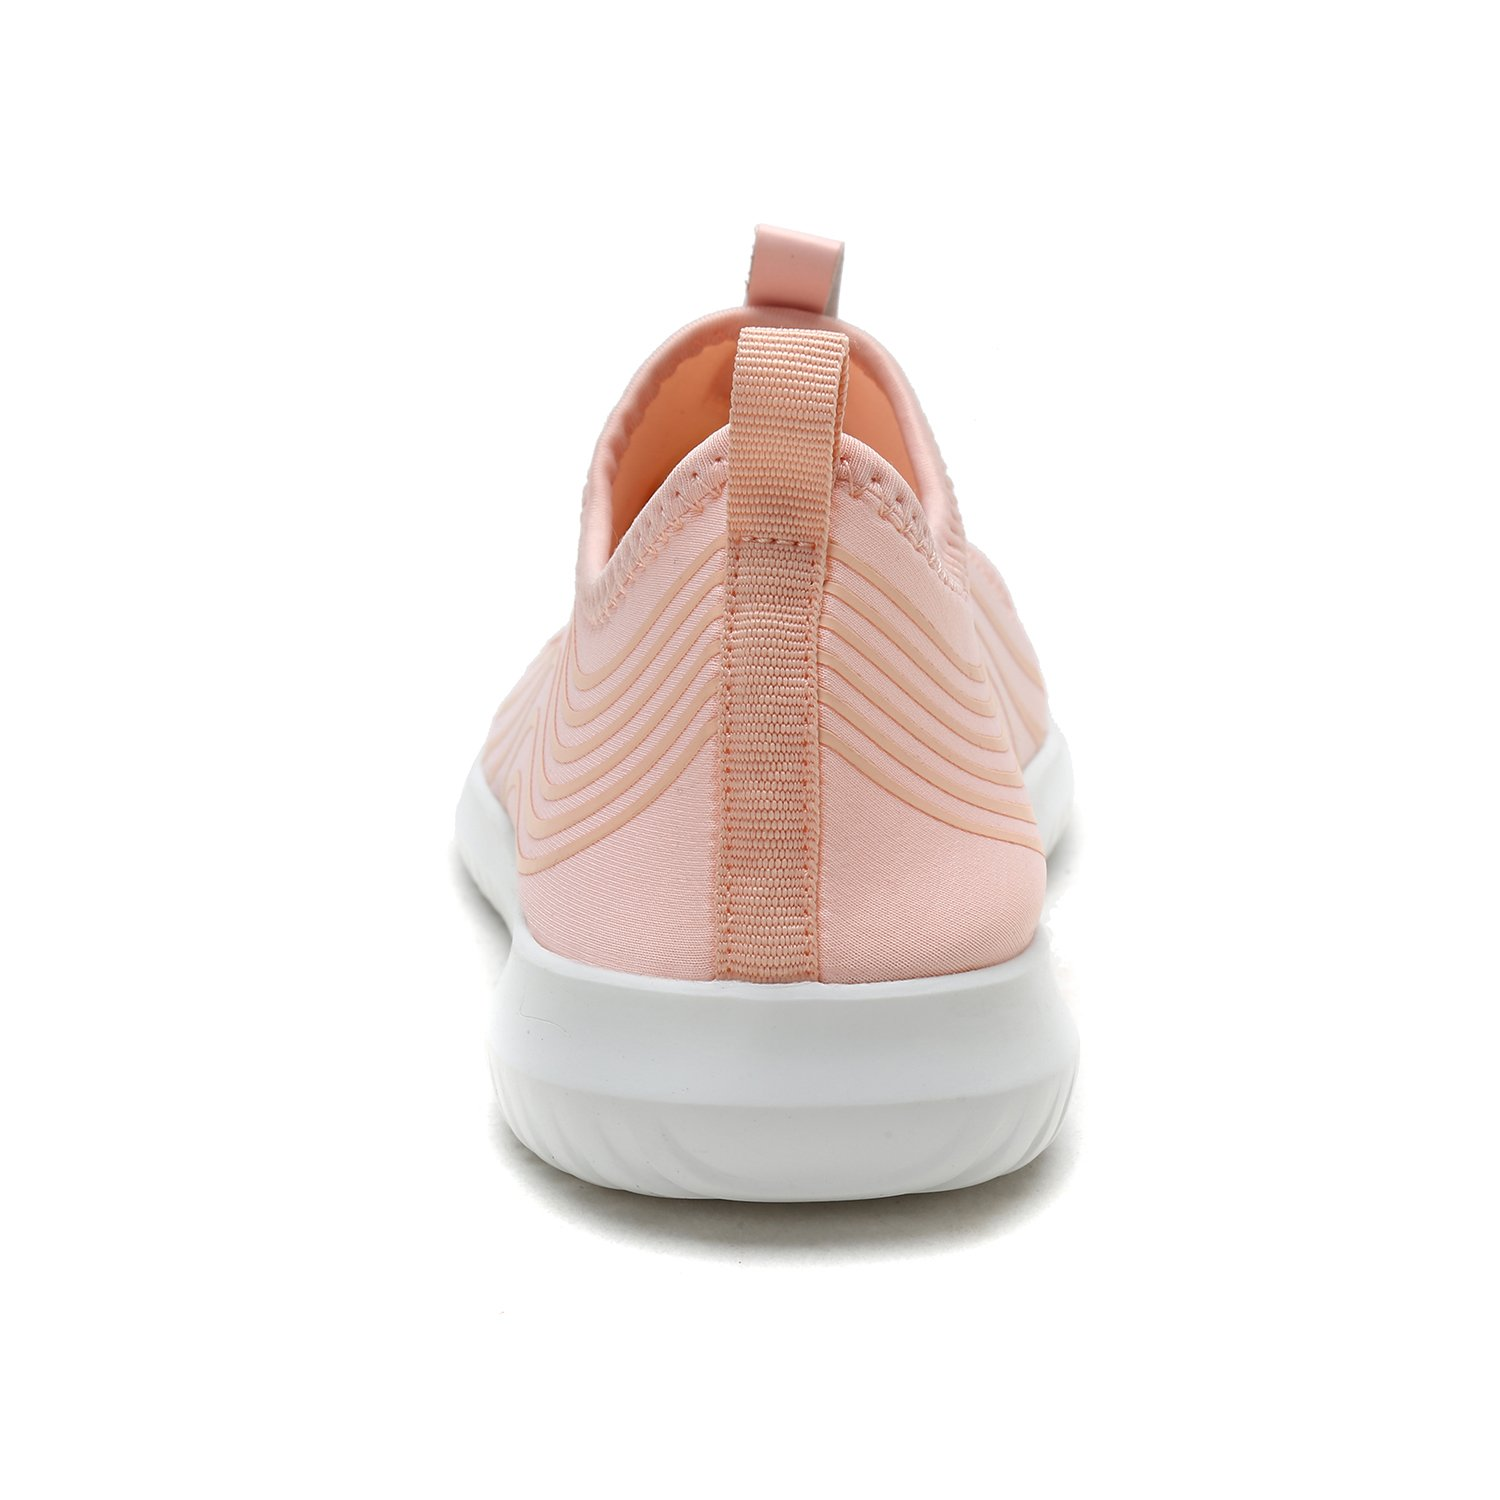 DREAM PAIRS Quick-Dry Water Shoes Sports Walking Casual Sneakers for Women B078876648 5 M US|Shell/Pink